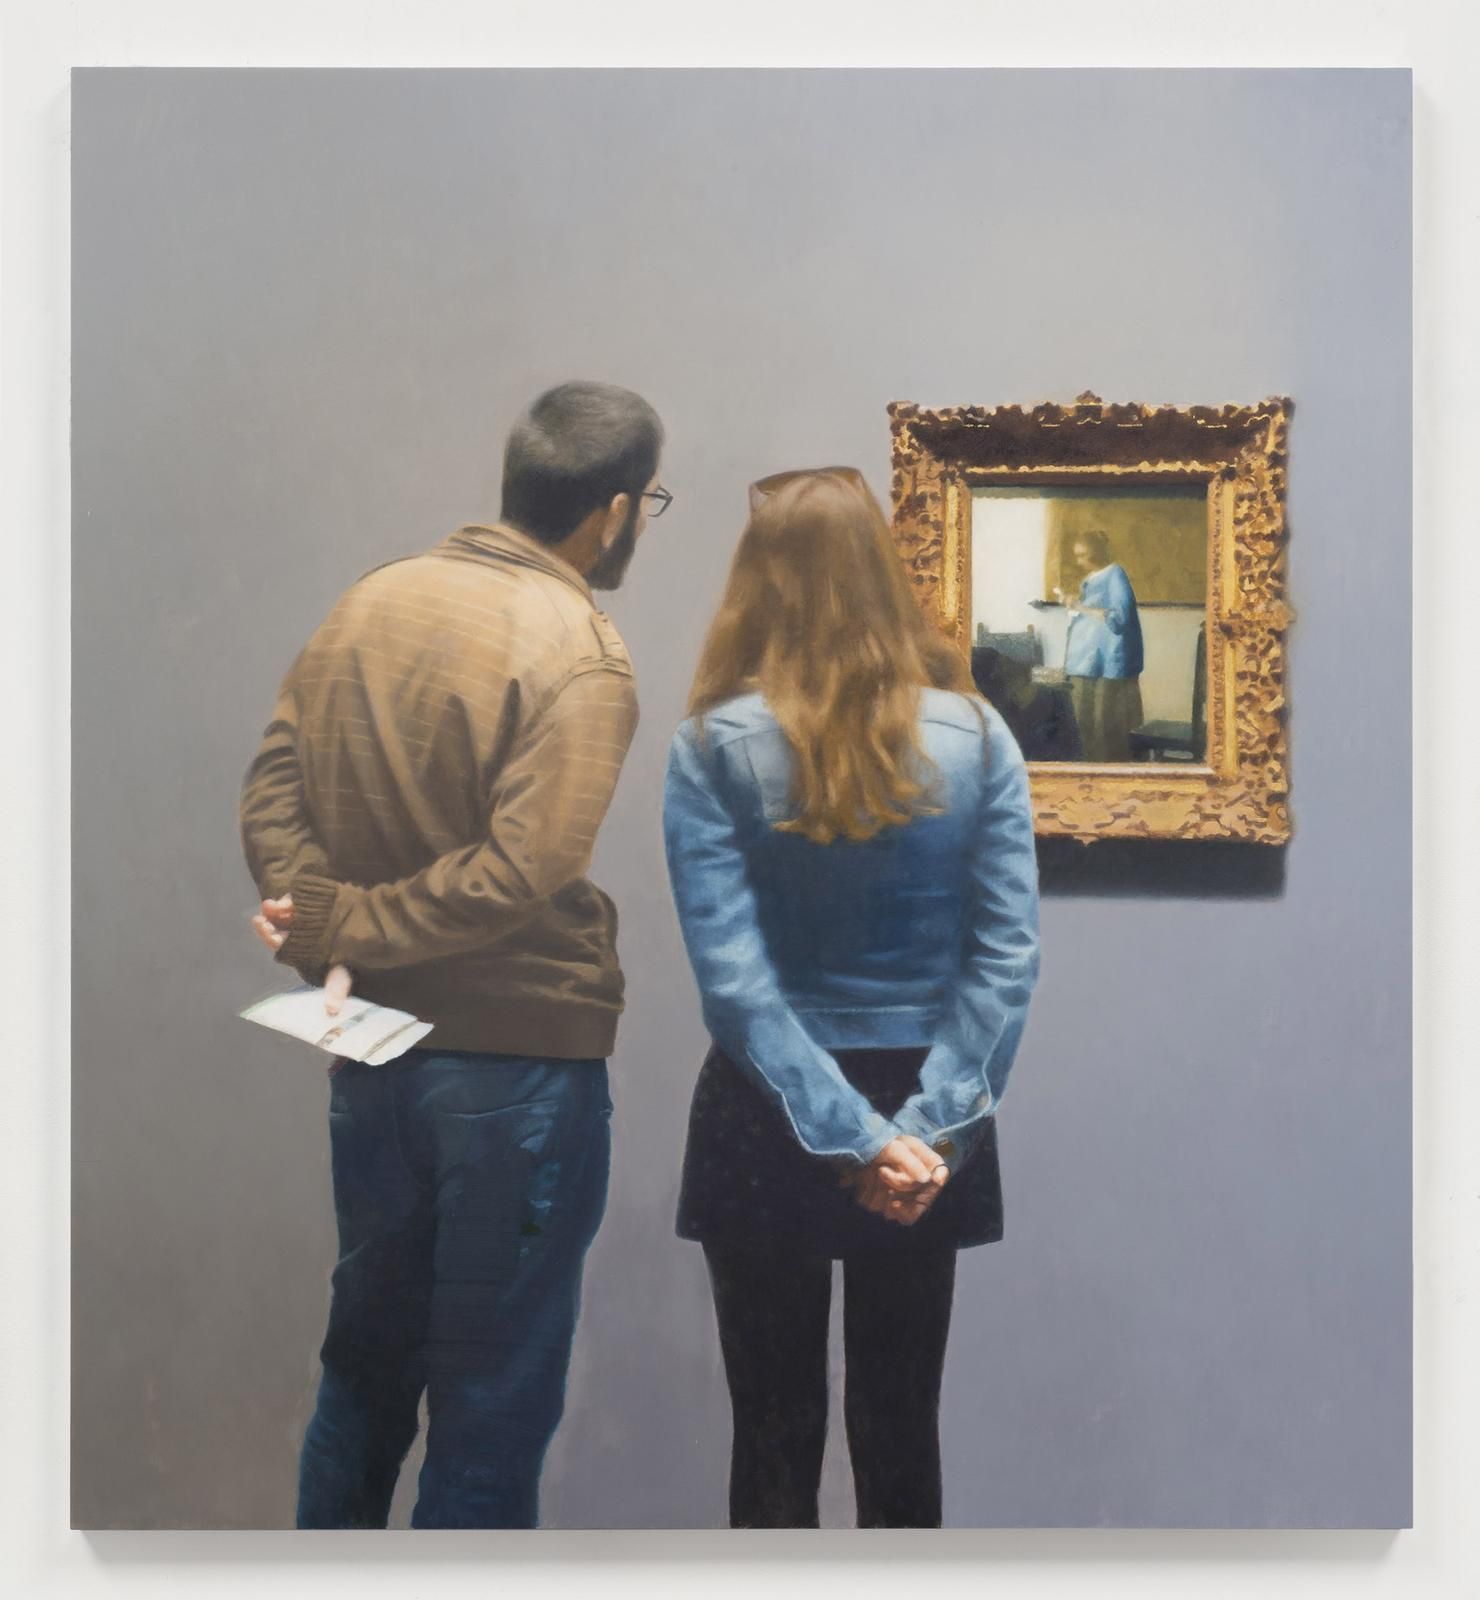 59 Paintings In which the Artist Considers the Process of Thinking about and Making Work Paul Winstanley